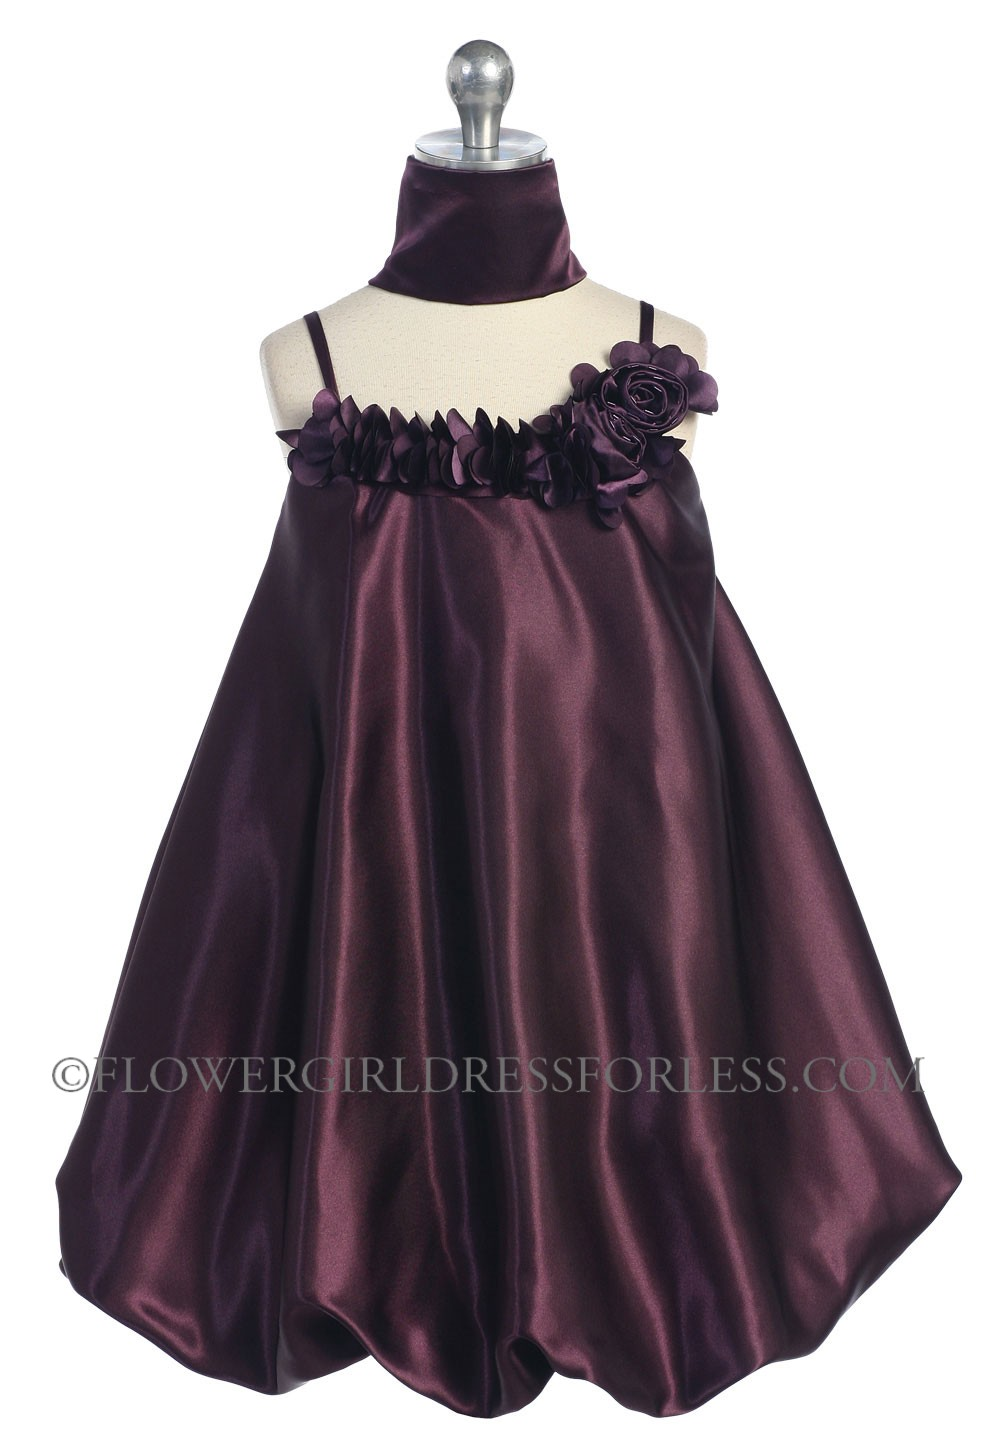 White Flower Girl Dress With Plum Sash 105